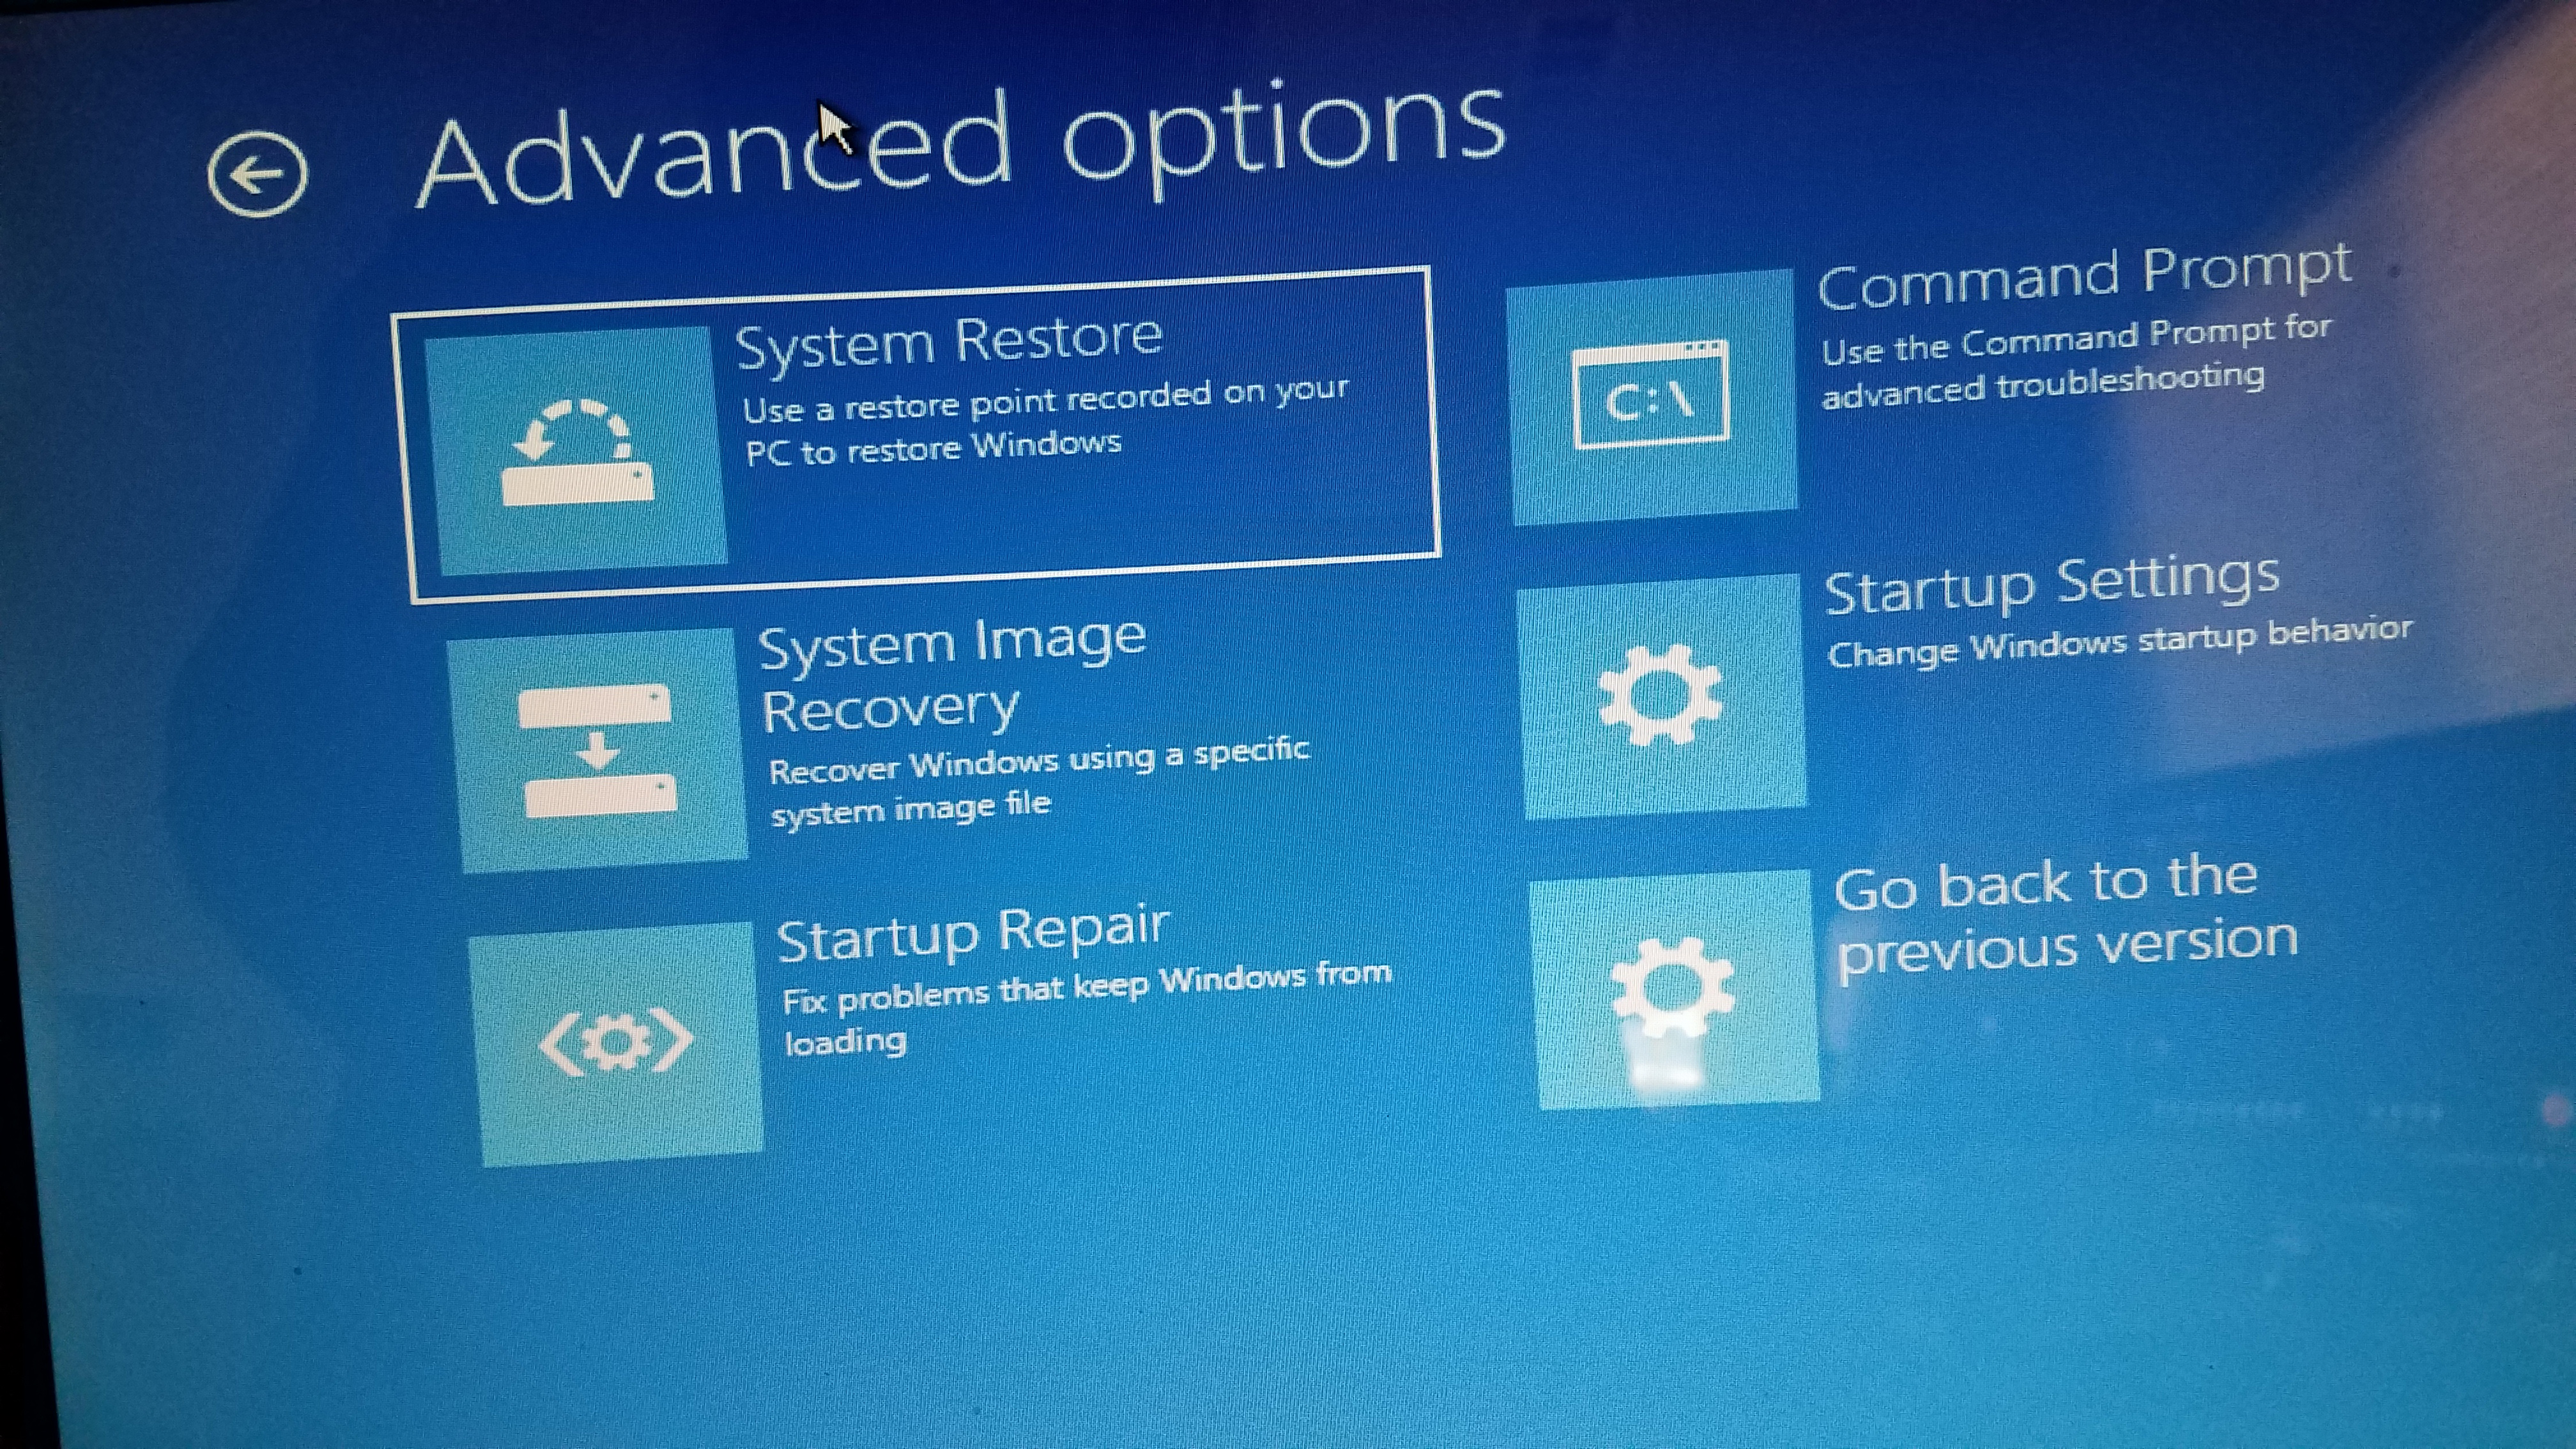 does the computer need to be online to revert to the previous version of windows we do not want it to revert and then try to install the latest version